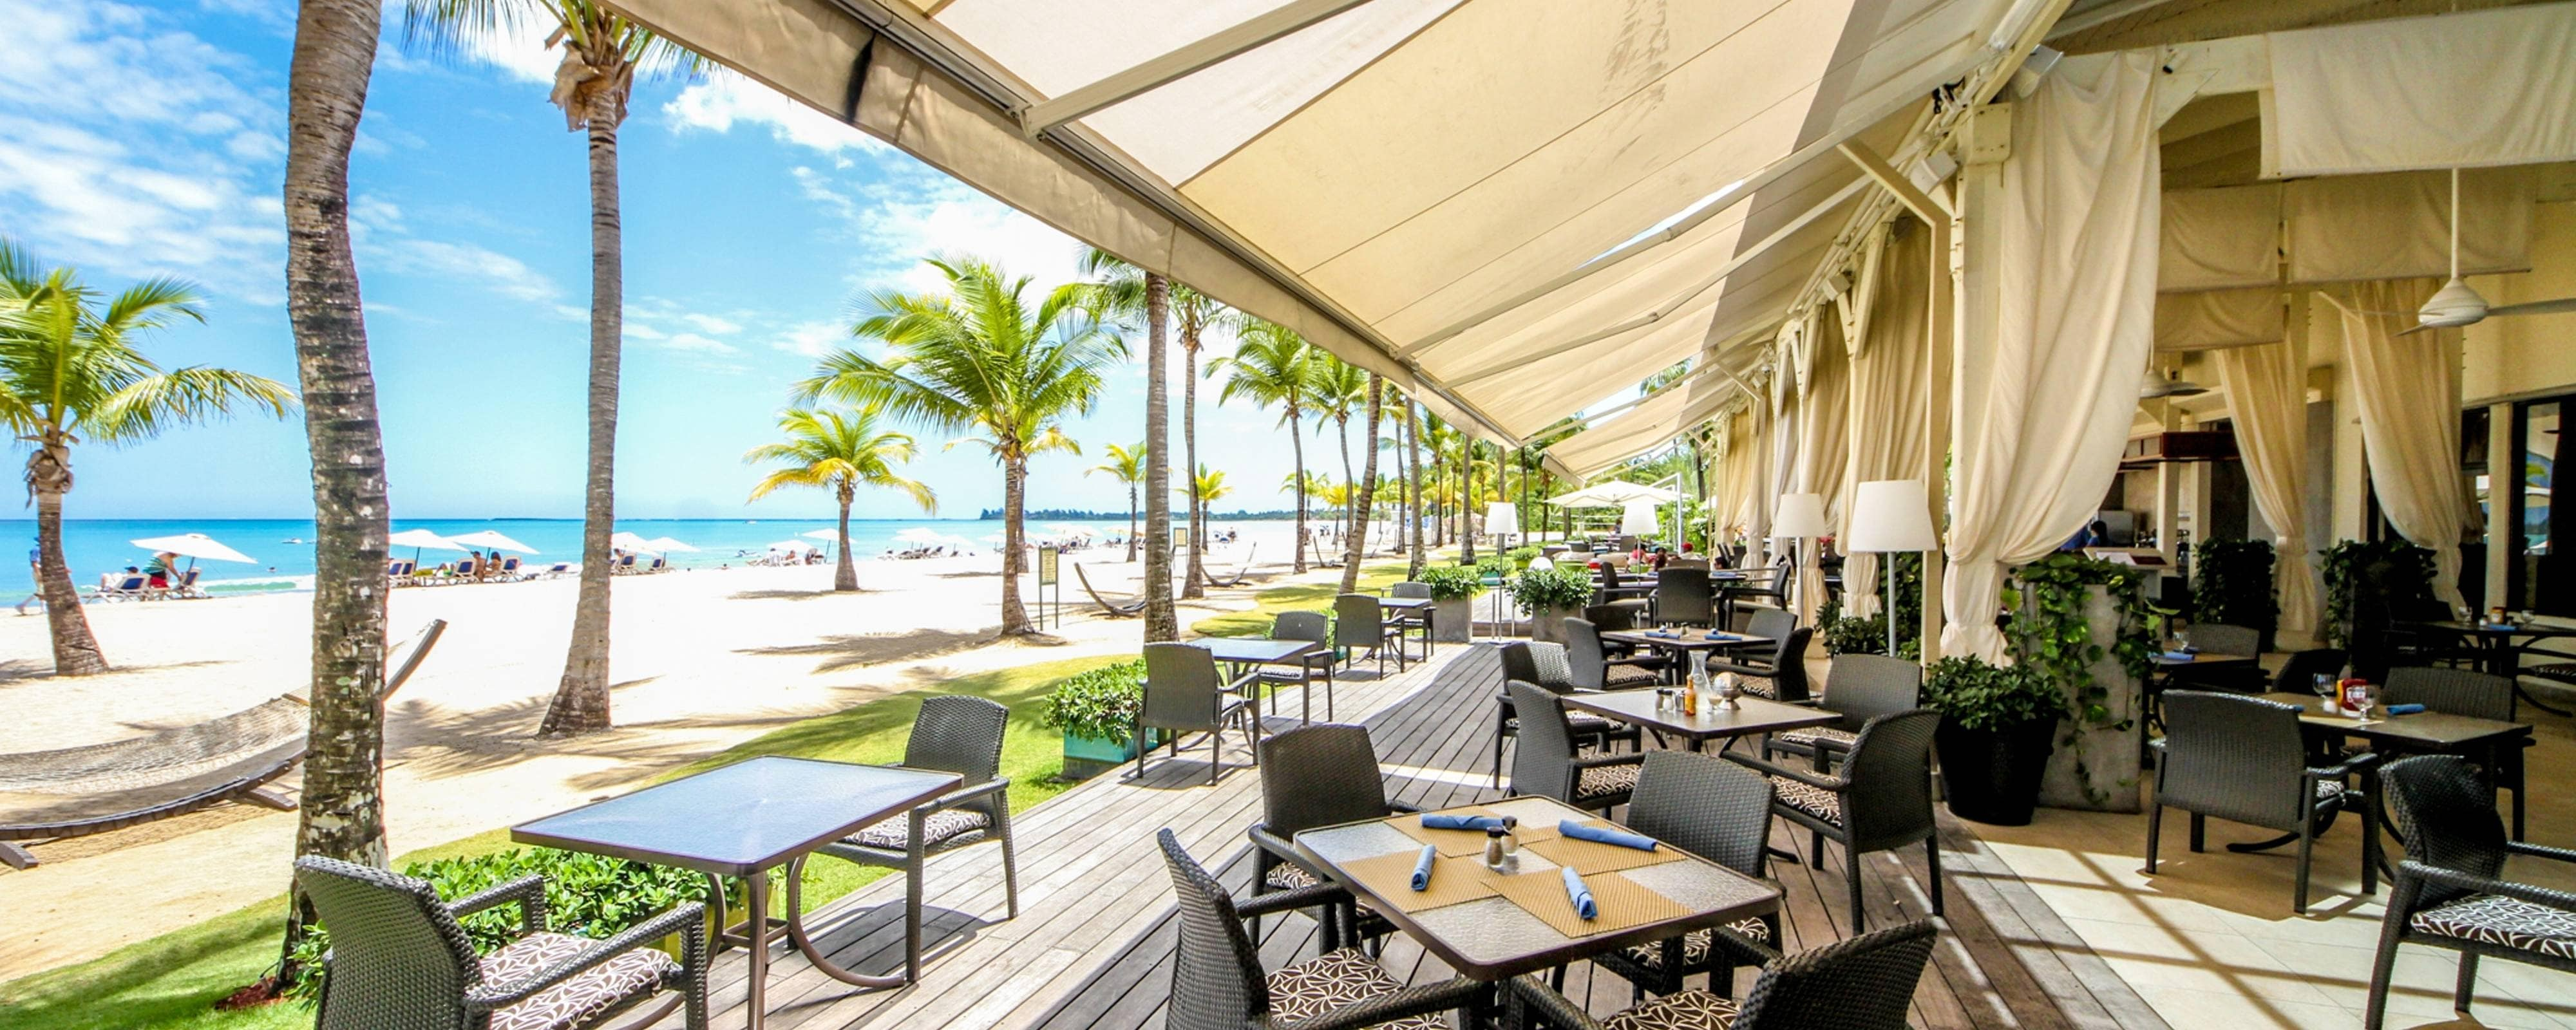 The Beach Grill Restaurant